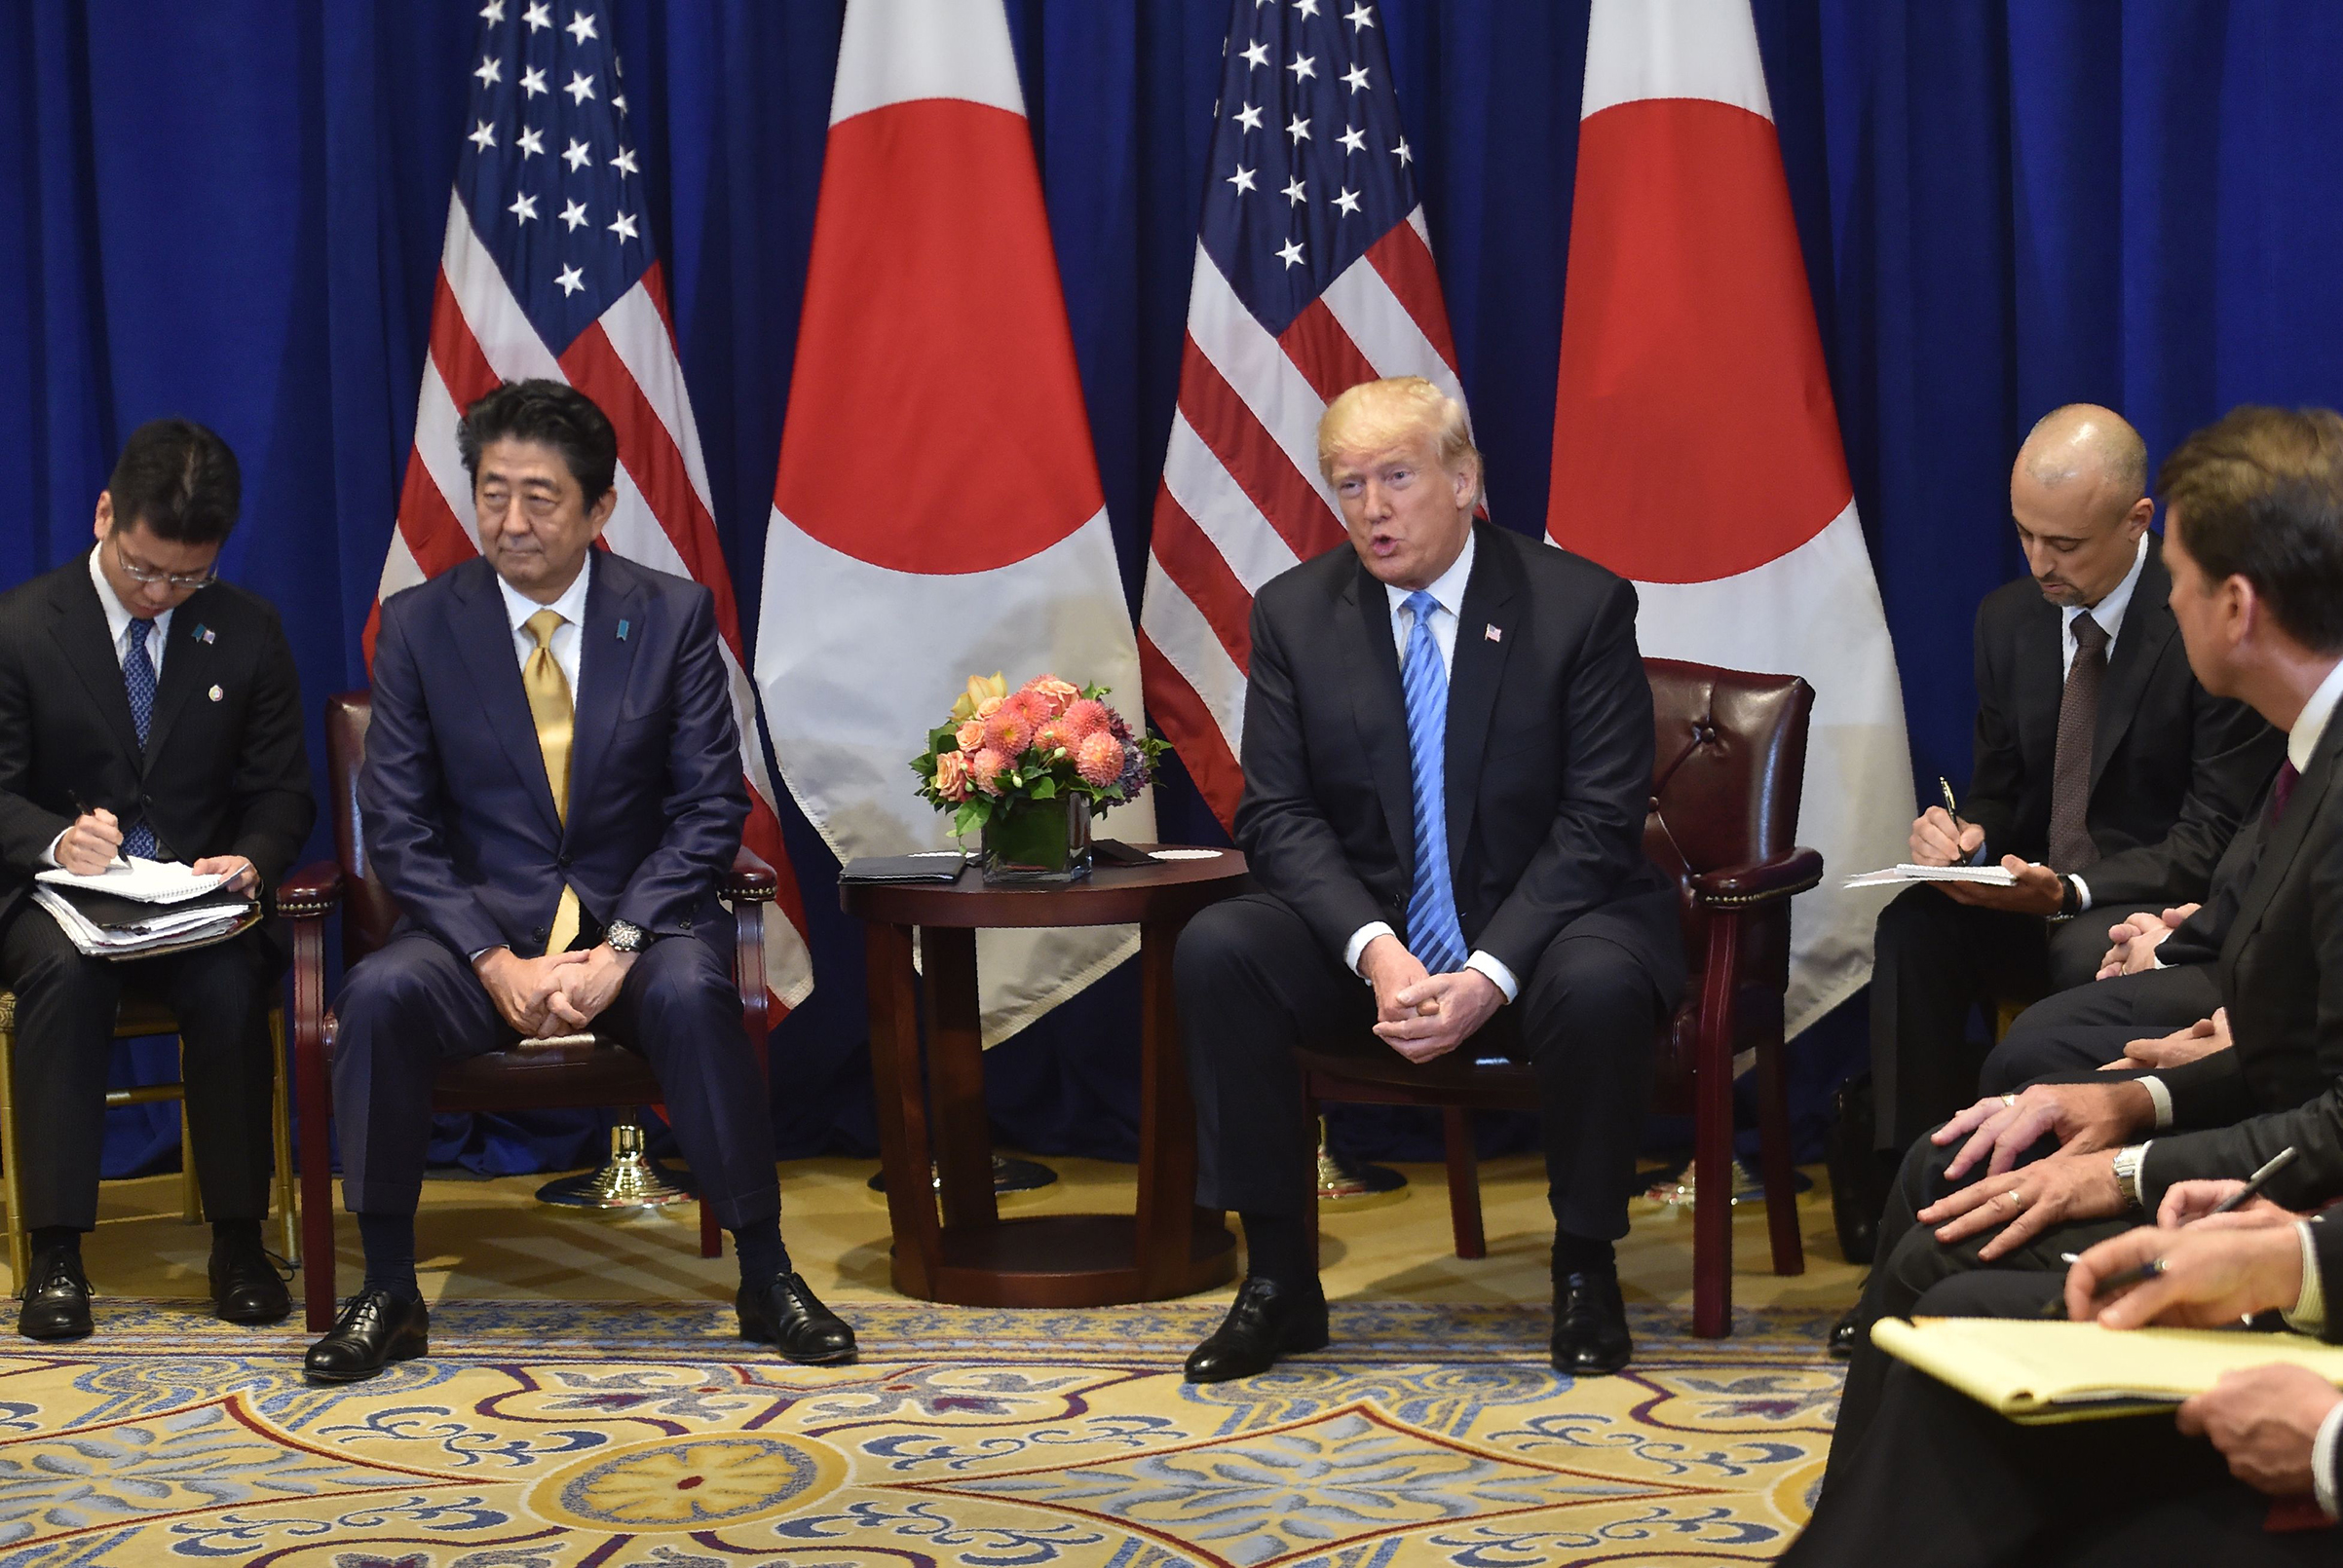 Japanese Prime Minister Shinzo Abe meets with US President Donald Trump, September 26, 2018 on the sidelines of the United Nations General Assembly (UNGA) in New York.